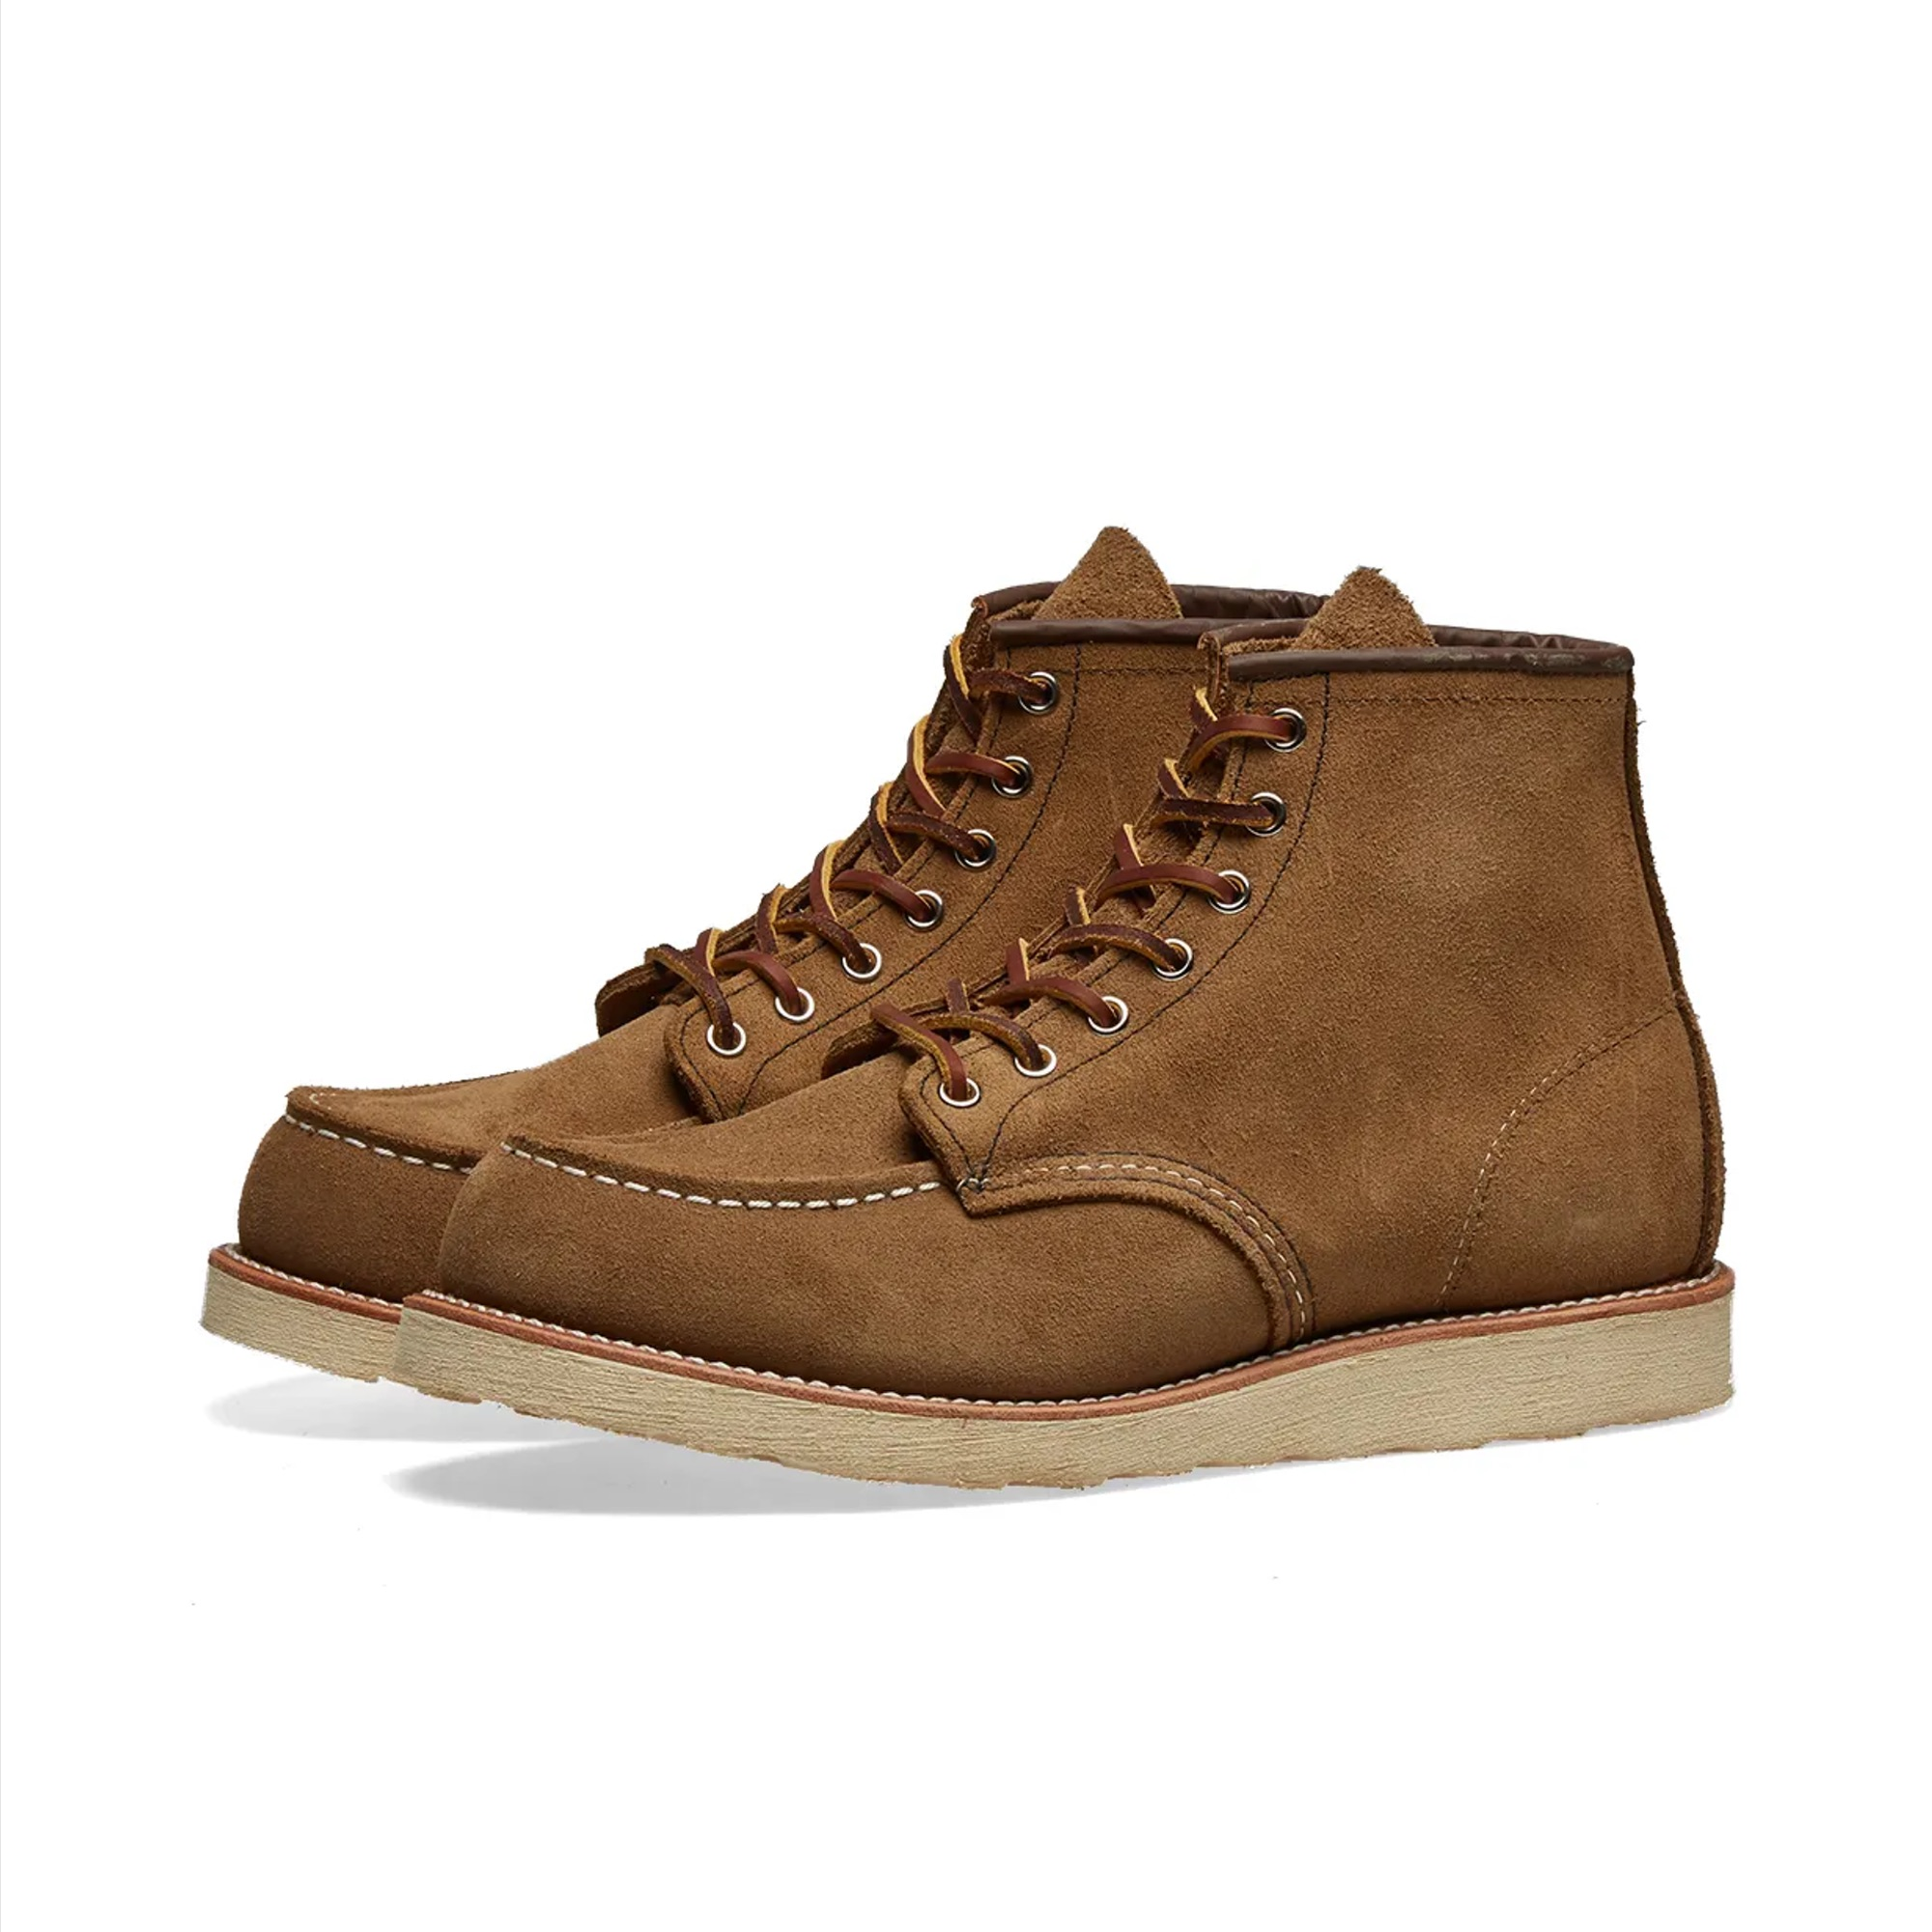 RED WING 8881 HERITAGE WORK 6 MOC TOE BOOT